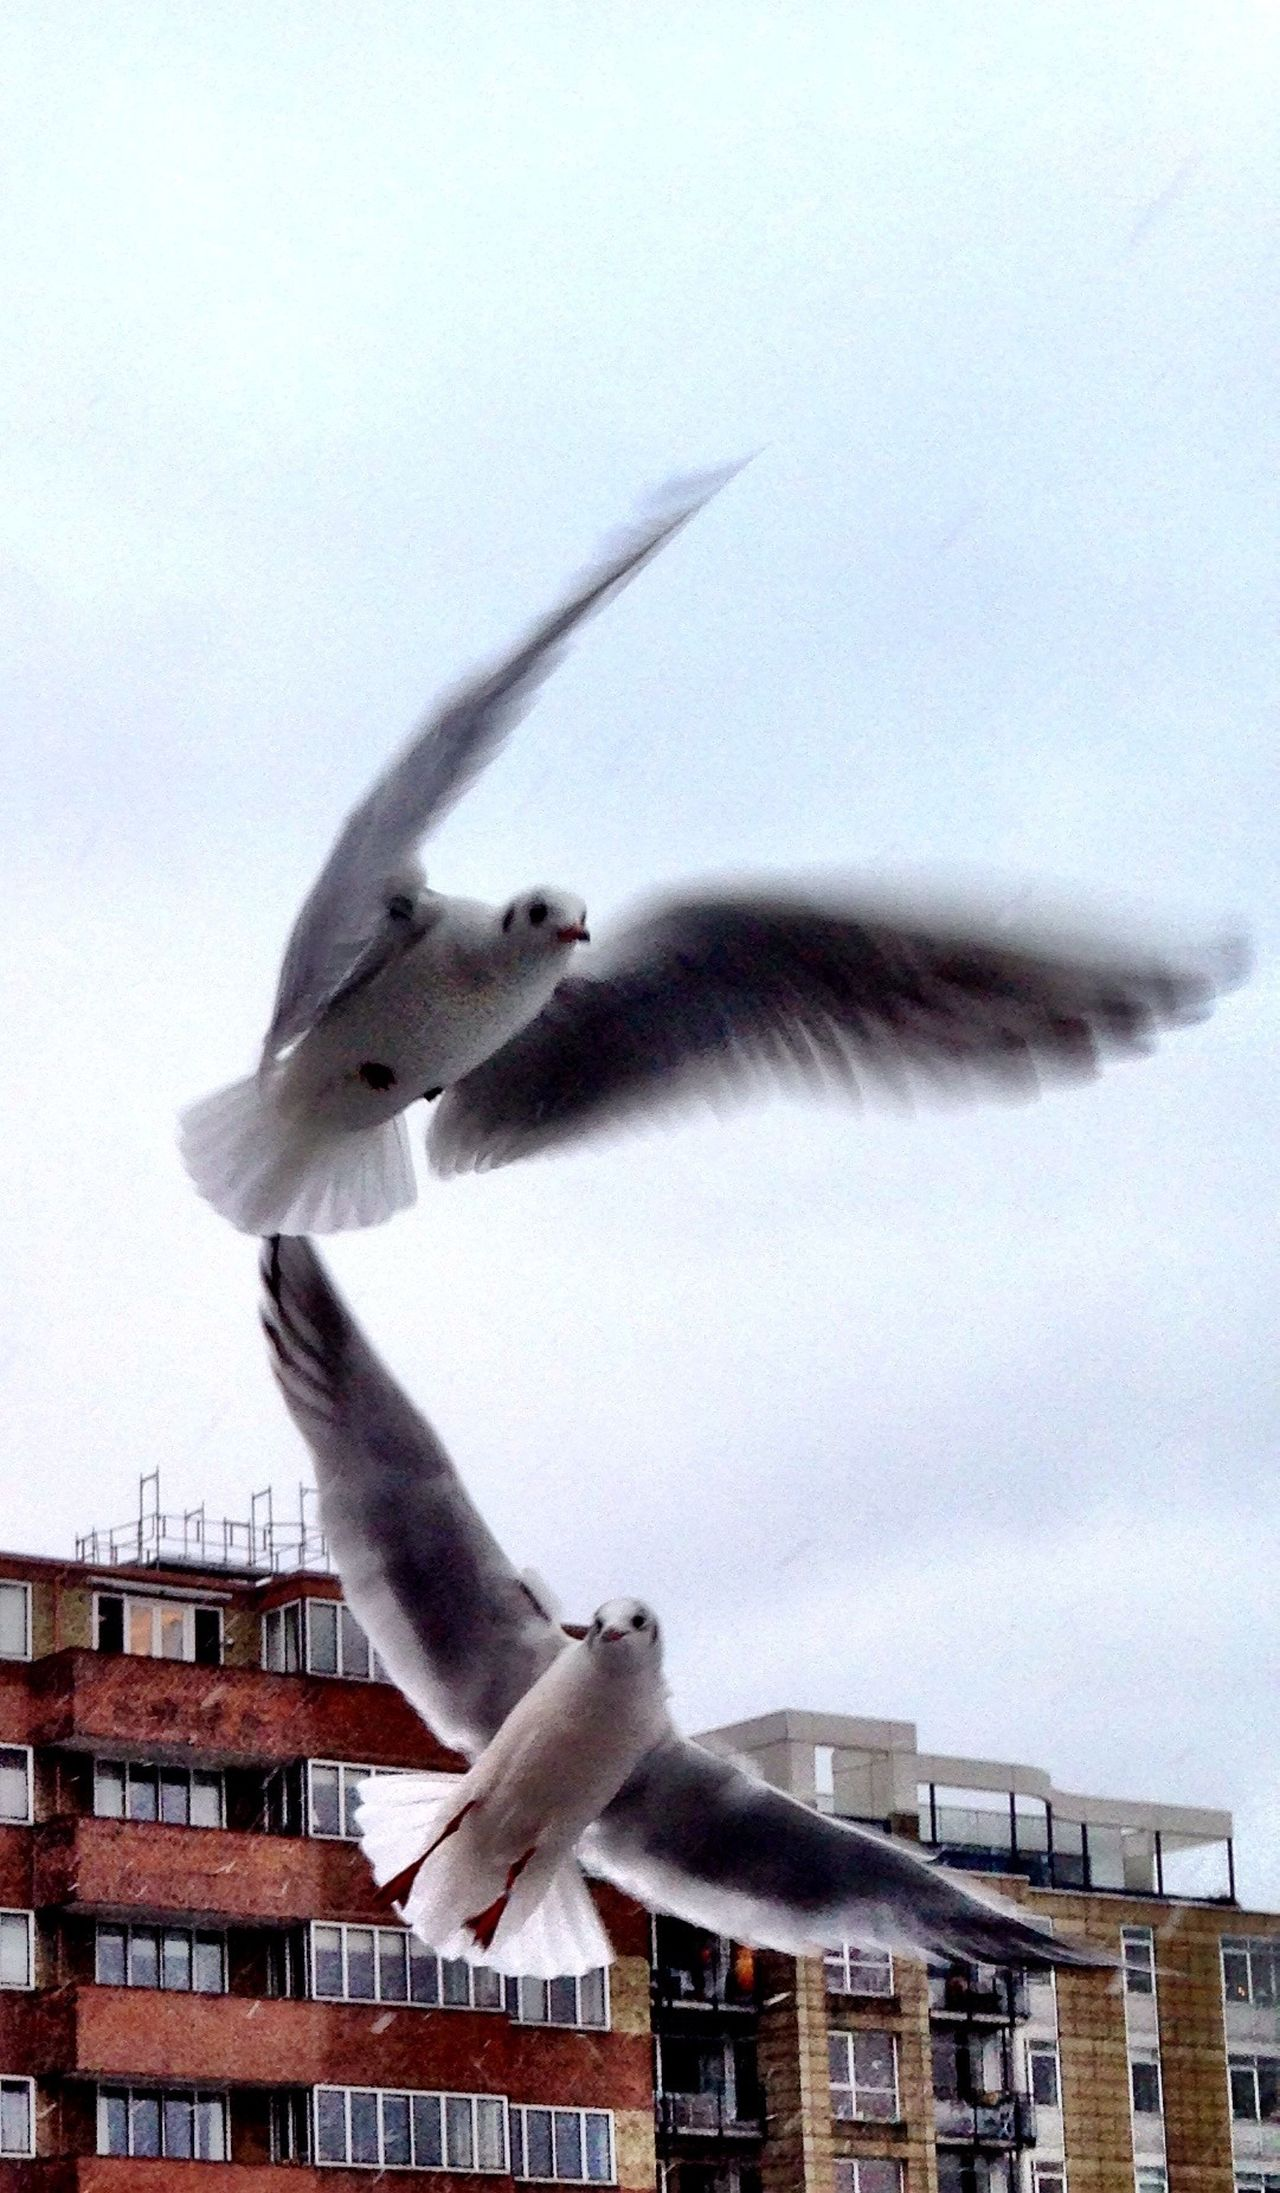 Seagulls flying in city